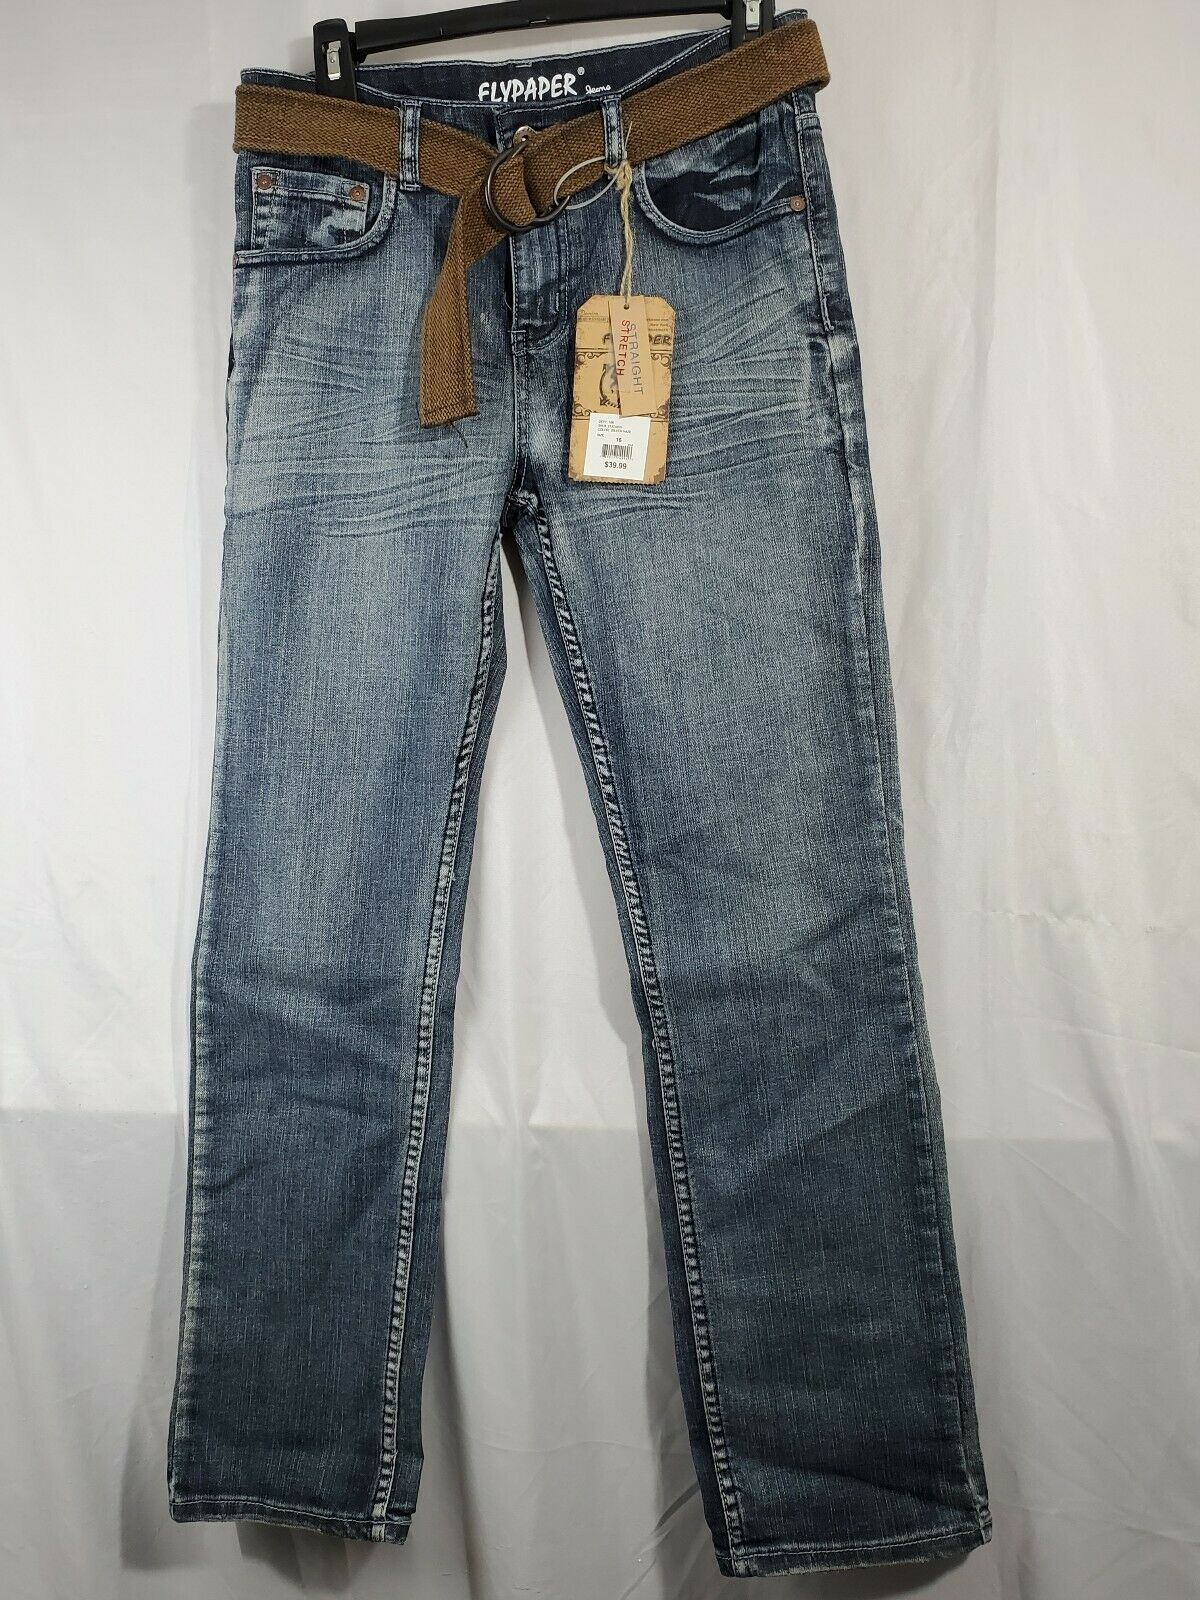 Primary image for NWT Flypaper Boys 16 med Wash straight stretch Adjustable Waist Jeans w belt (8)